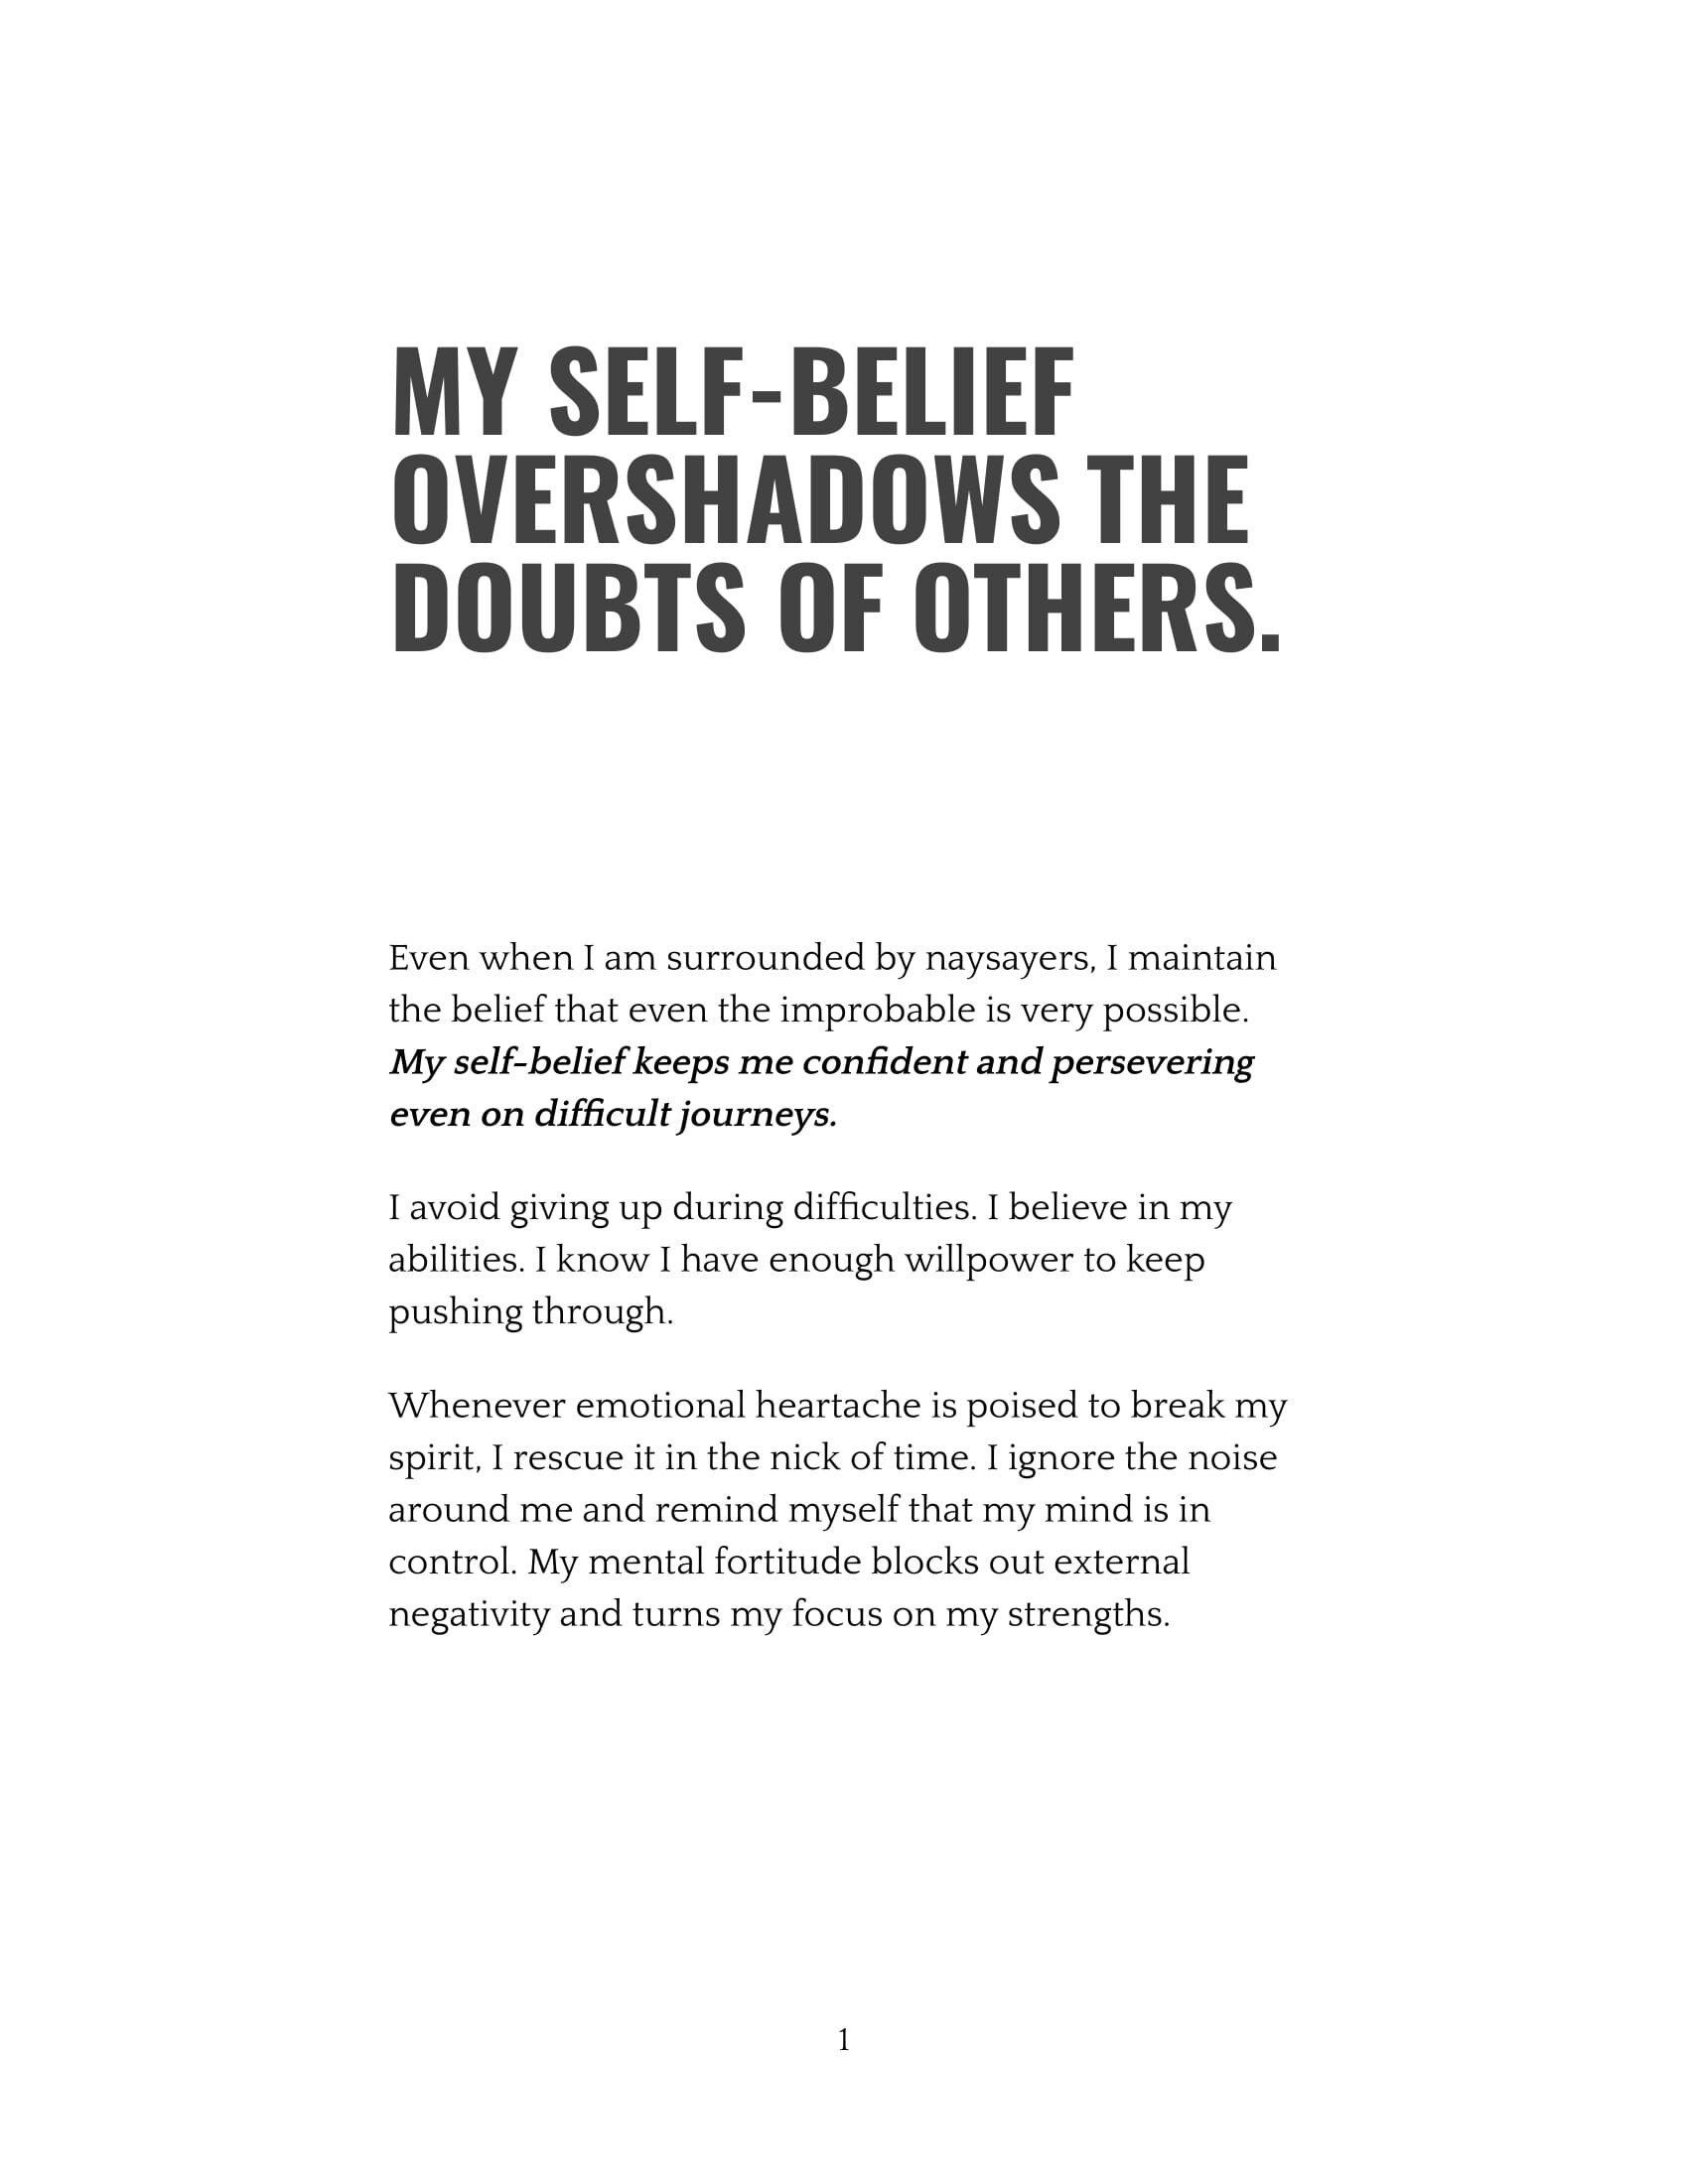 My Self Belief Overshadows The Doubts Of Others-1.jpg